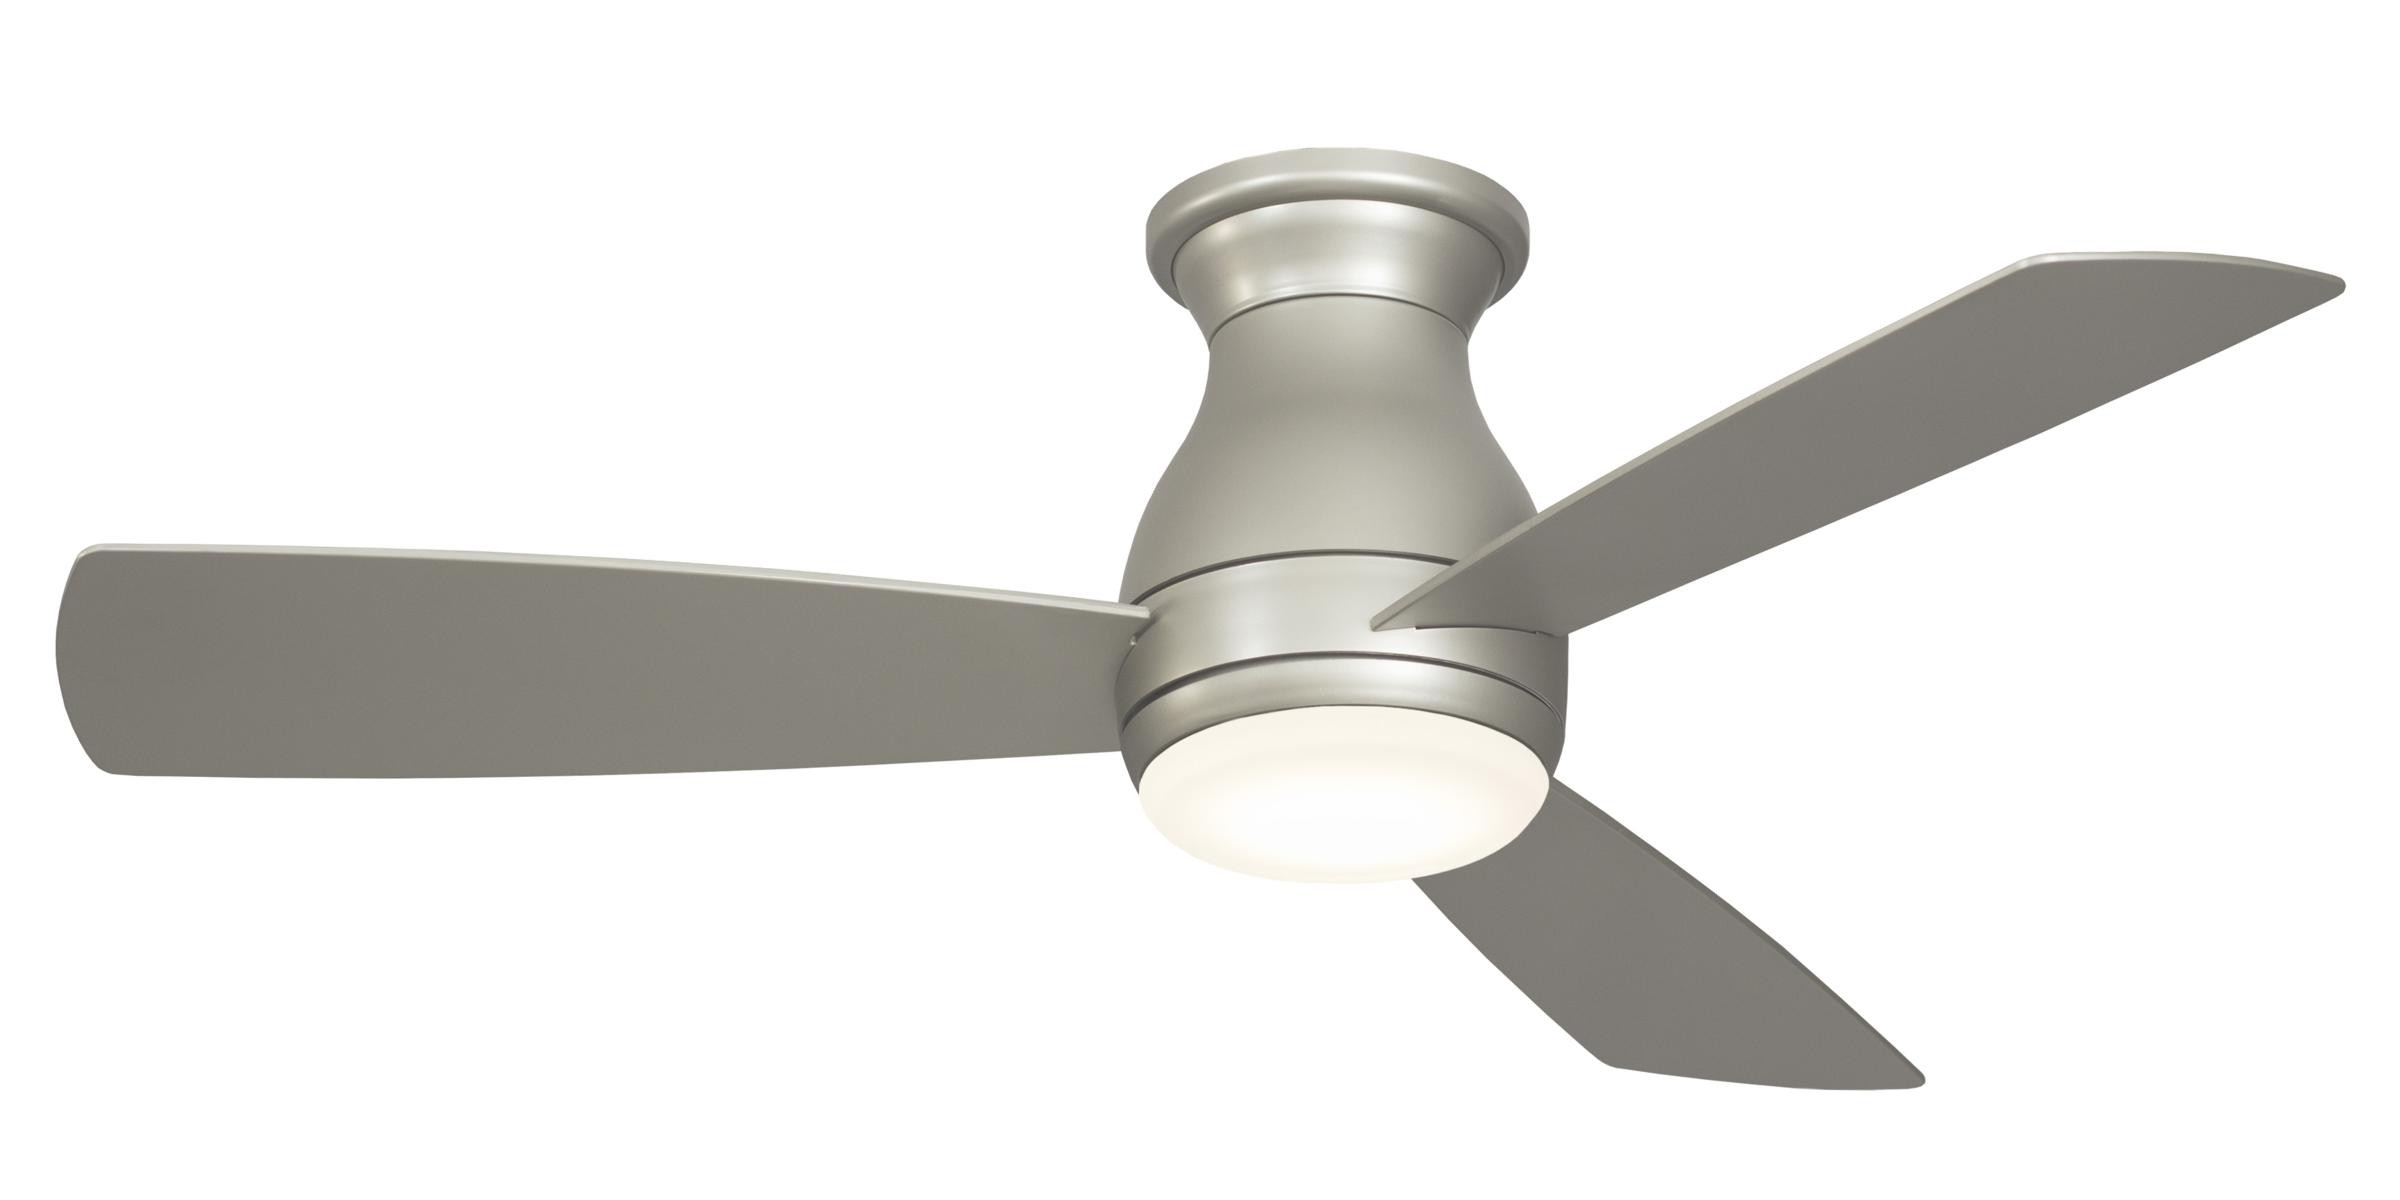 Well Known Outdoor Ceiling Fans For Windy Areas Regarding Fanimation Hugh 44 Ceiling Fan Model Fps8332bnw In Brushed Nickel (View 20 of 20)